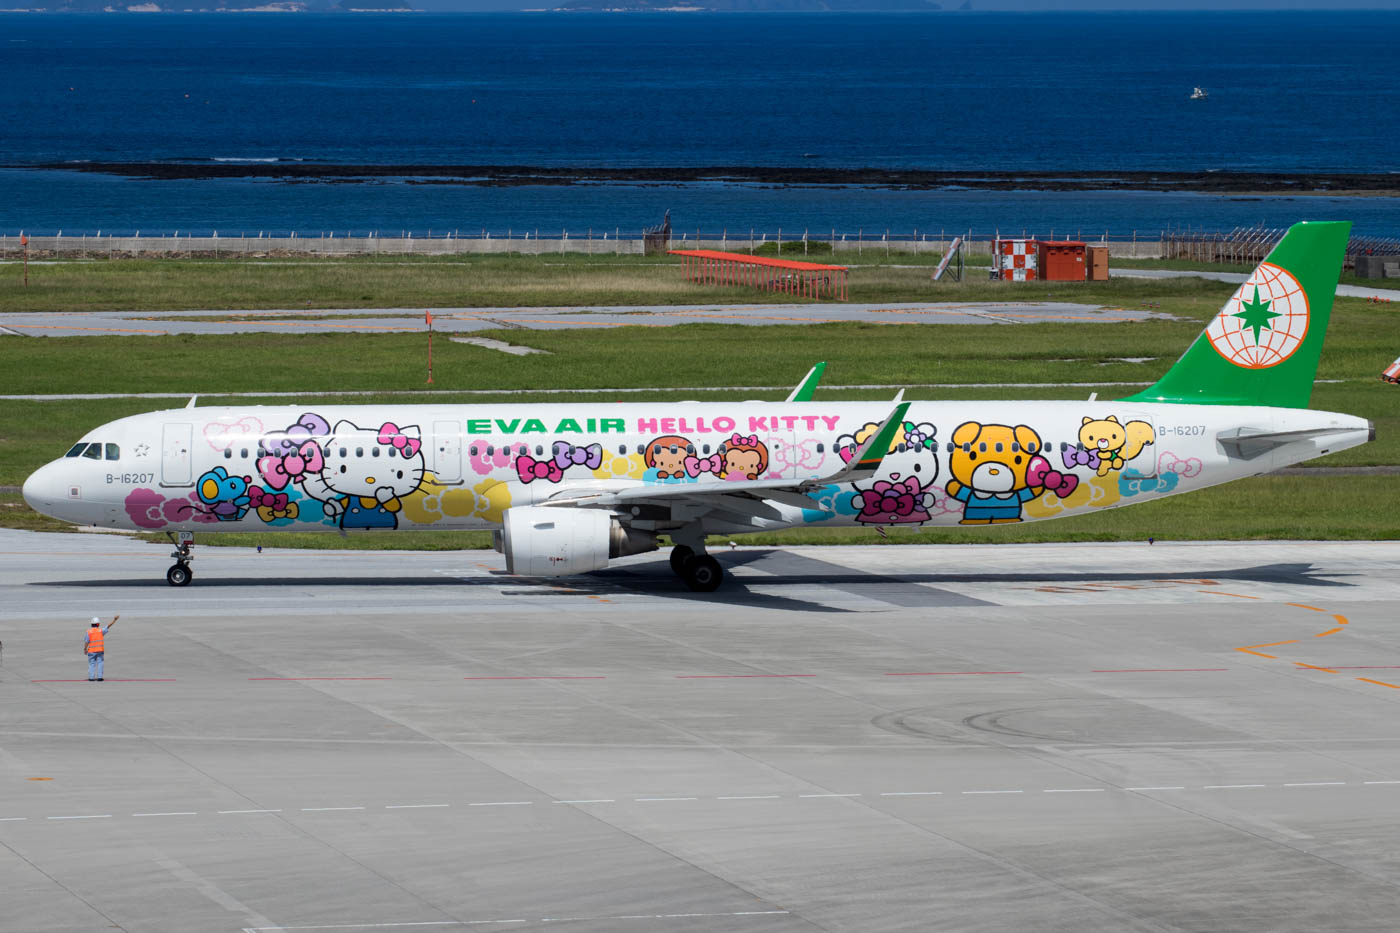 Eva Air A321 at Naha Airport in Hello Kitty Livery